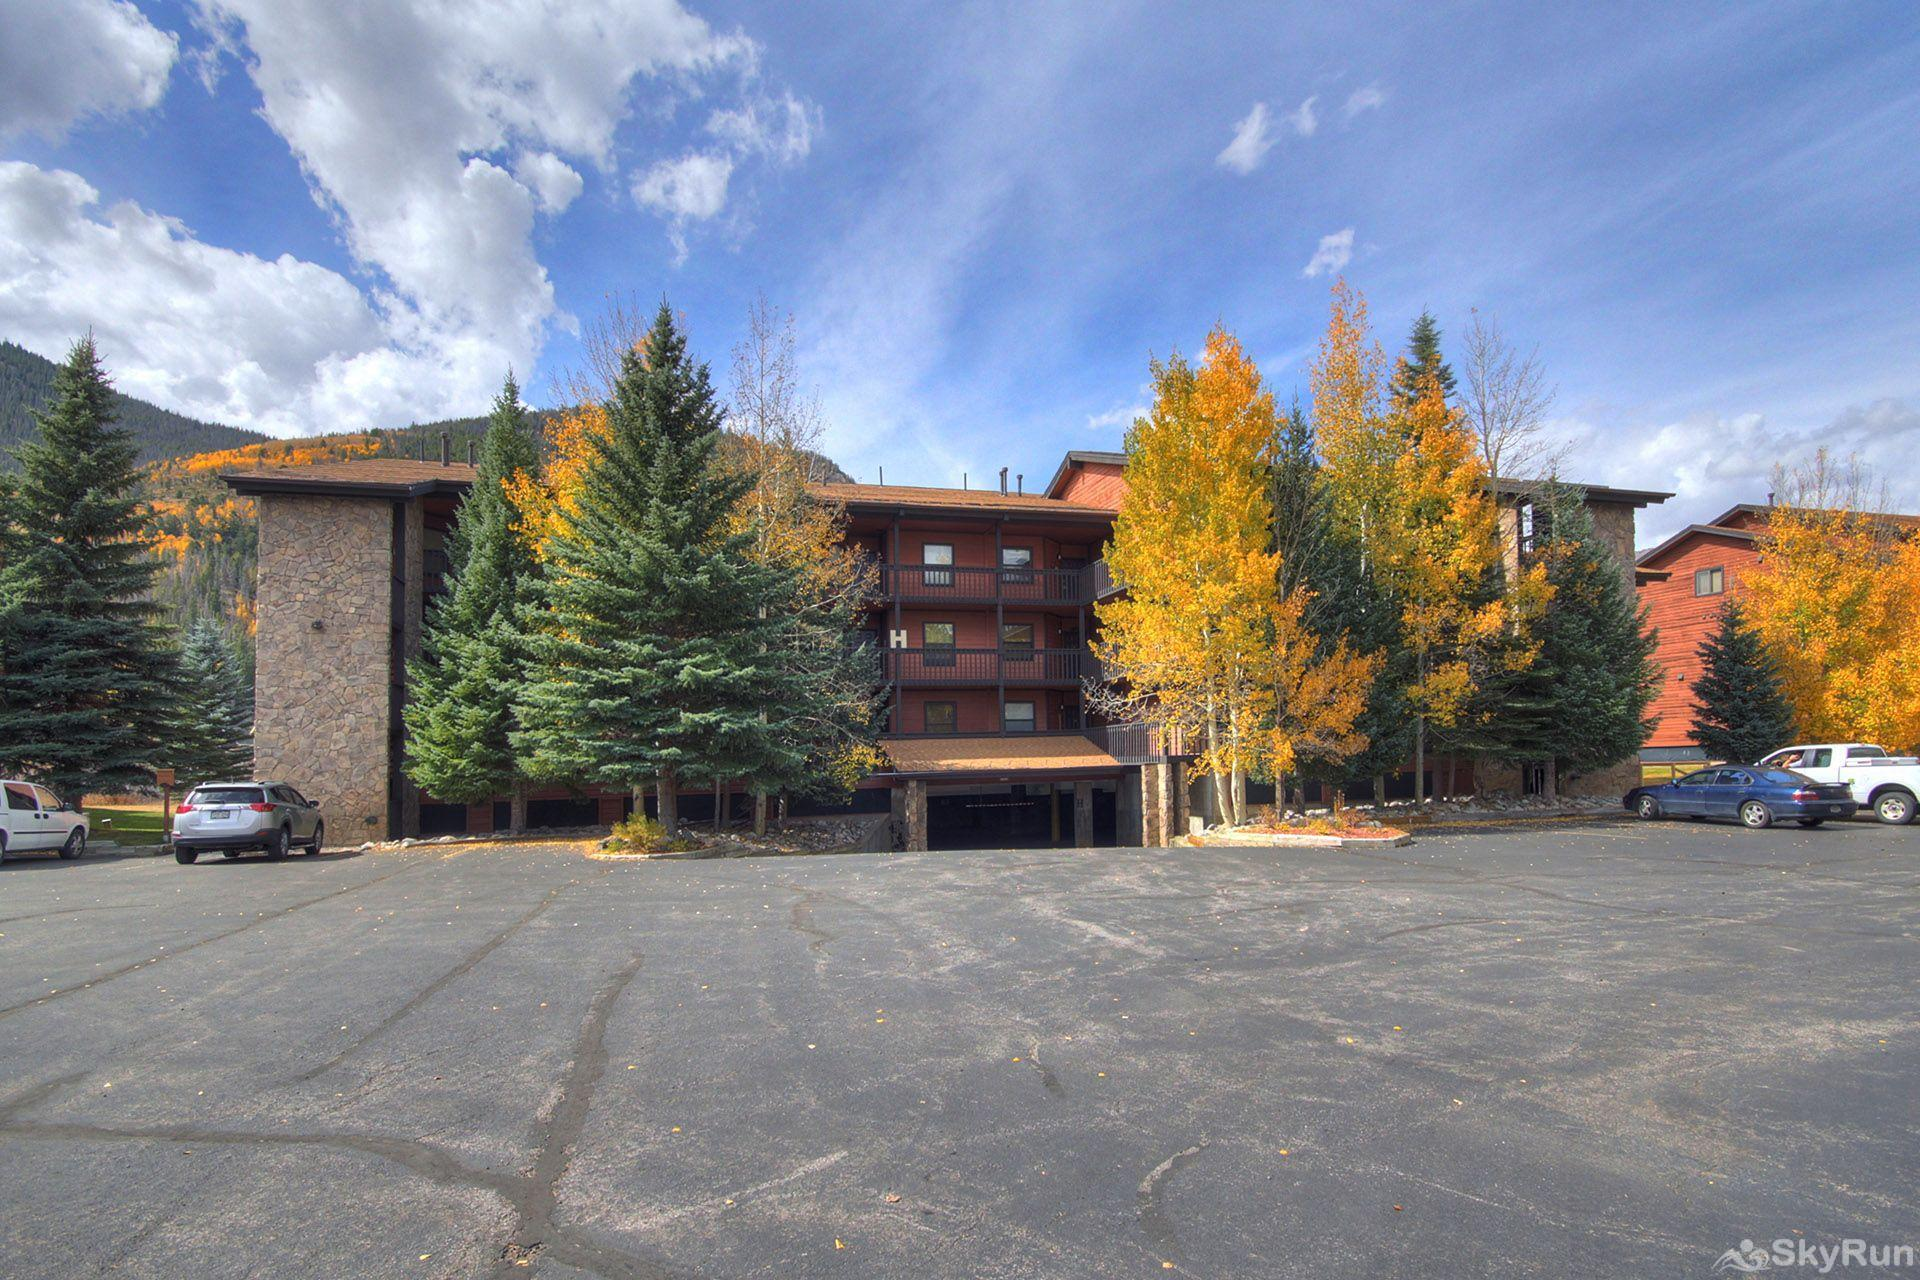 241C Mountain Side 2BR 2BA Parking at the condo